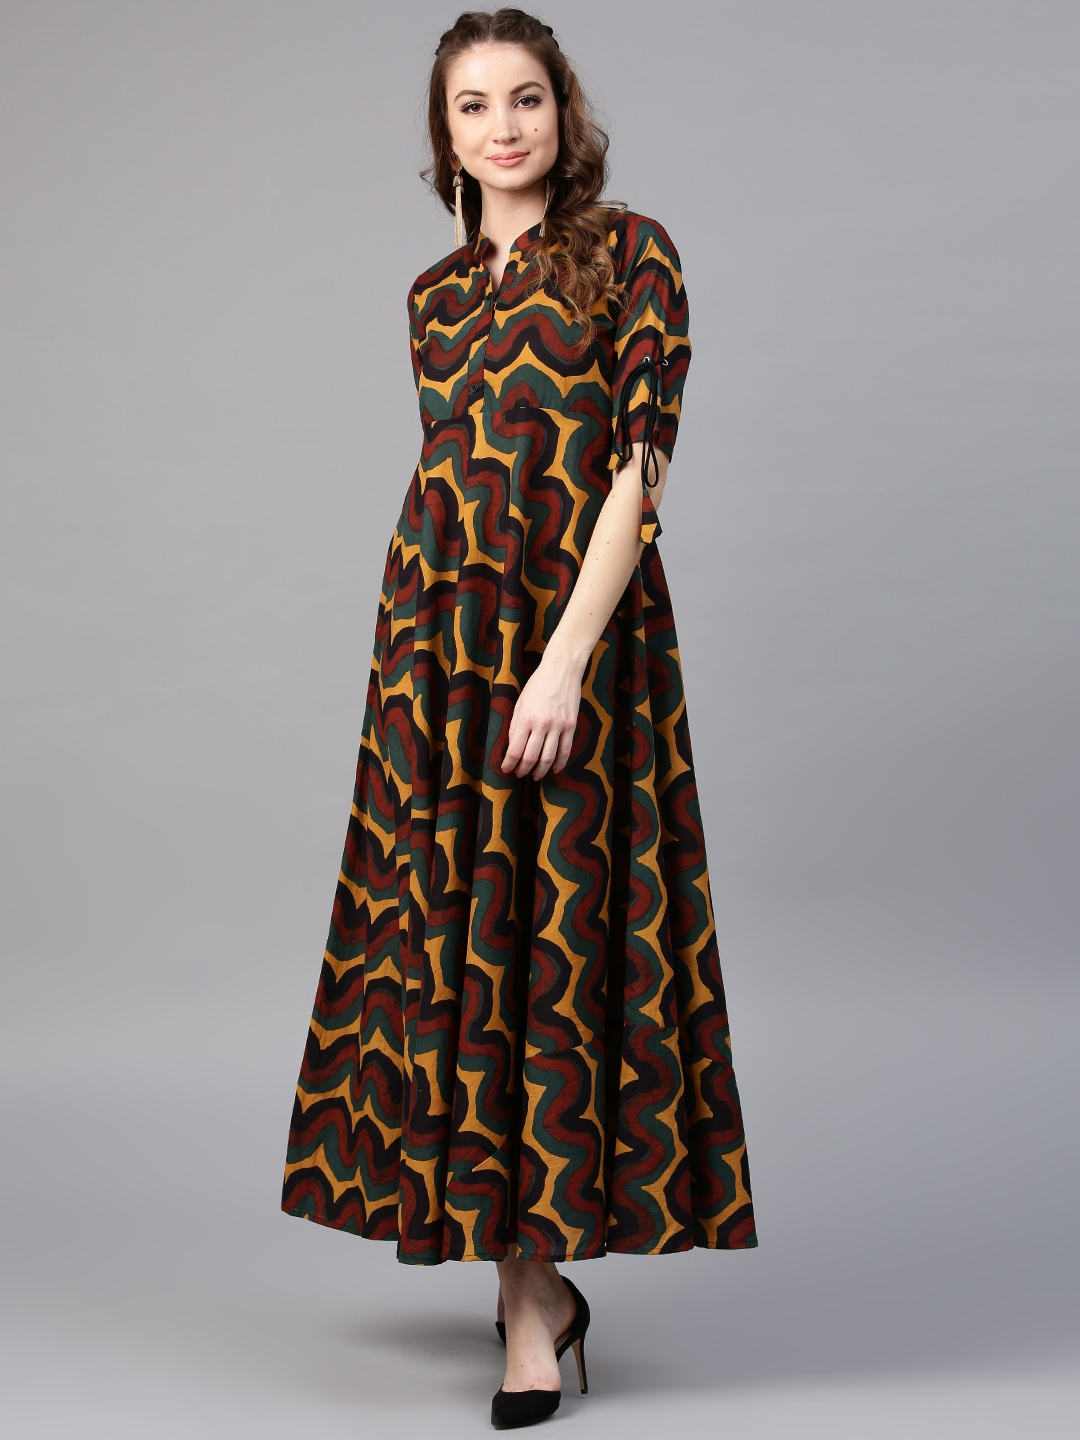 56e12e2c0d0 Buy AKS Women Mustard Yellow   Brown Printed Maxi Dress - Dresses ...